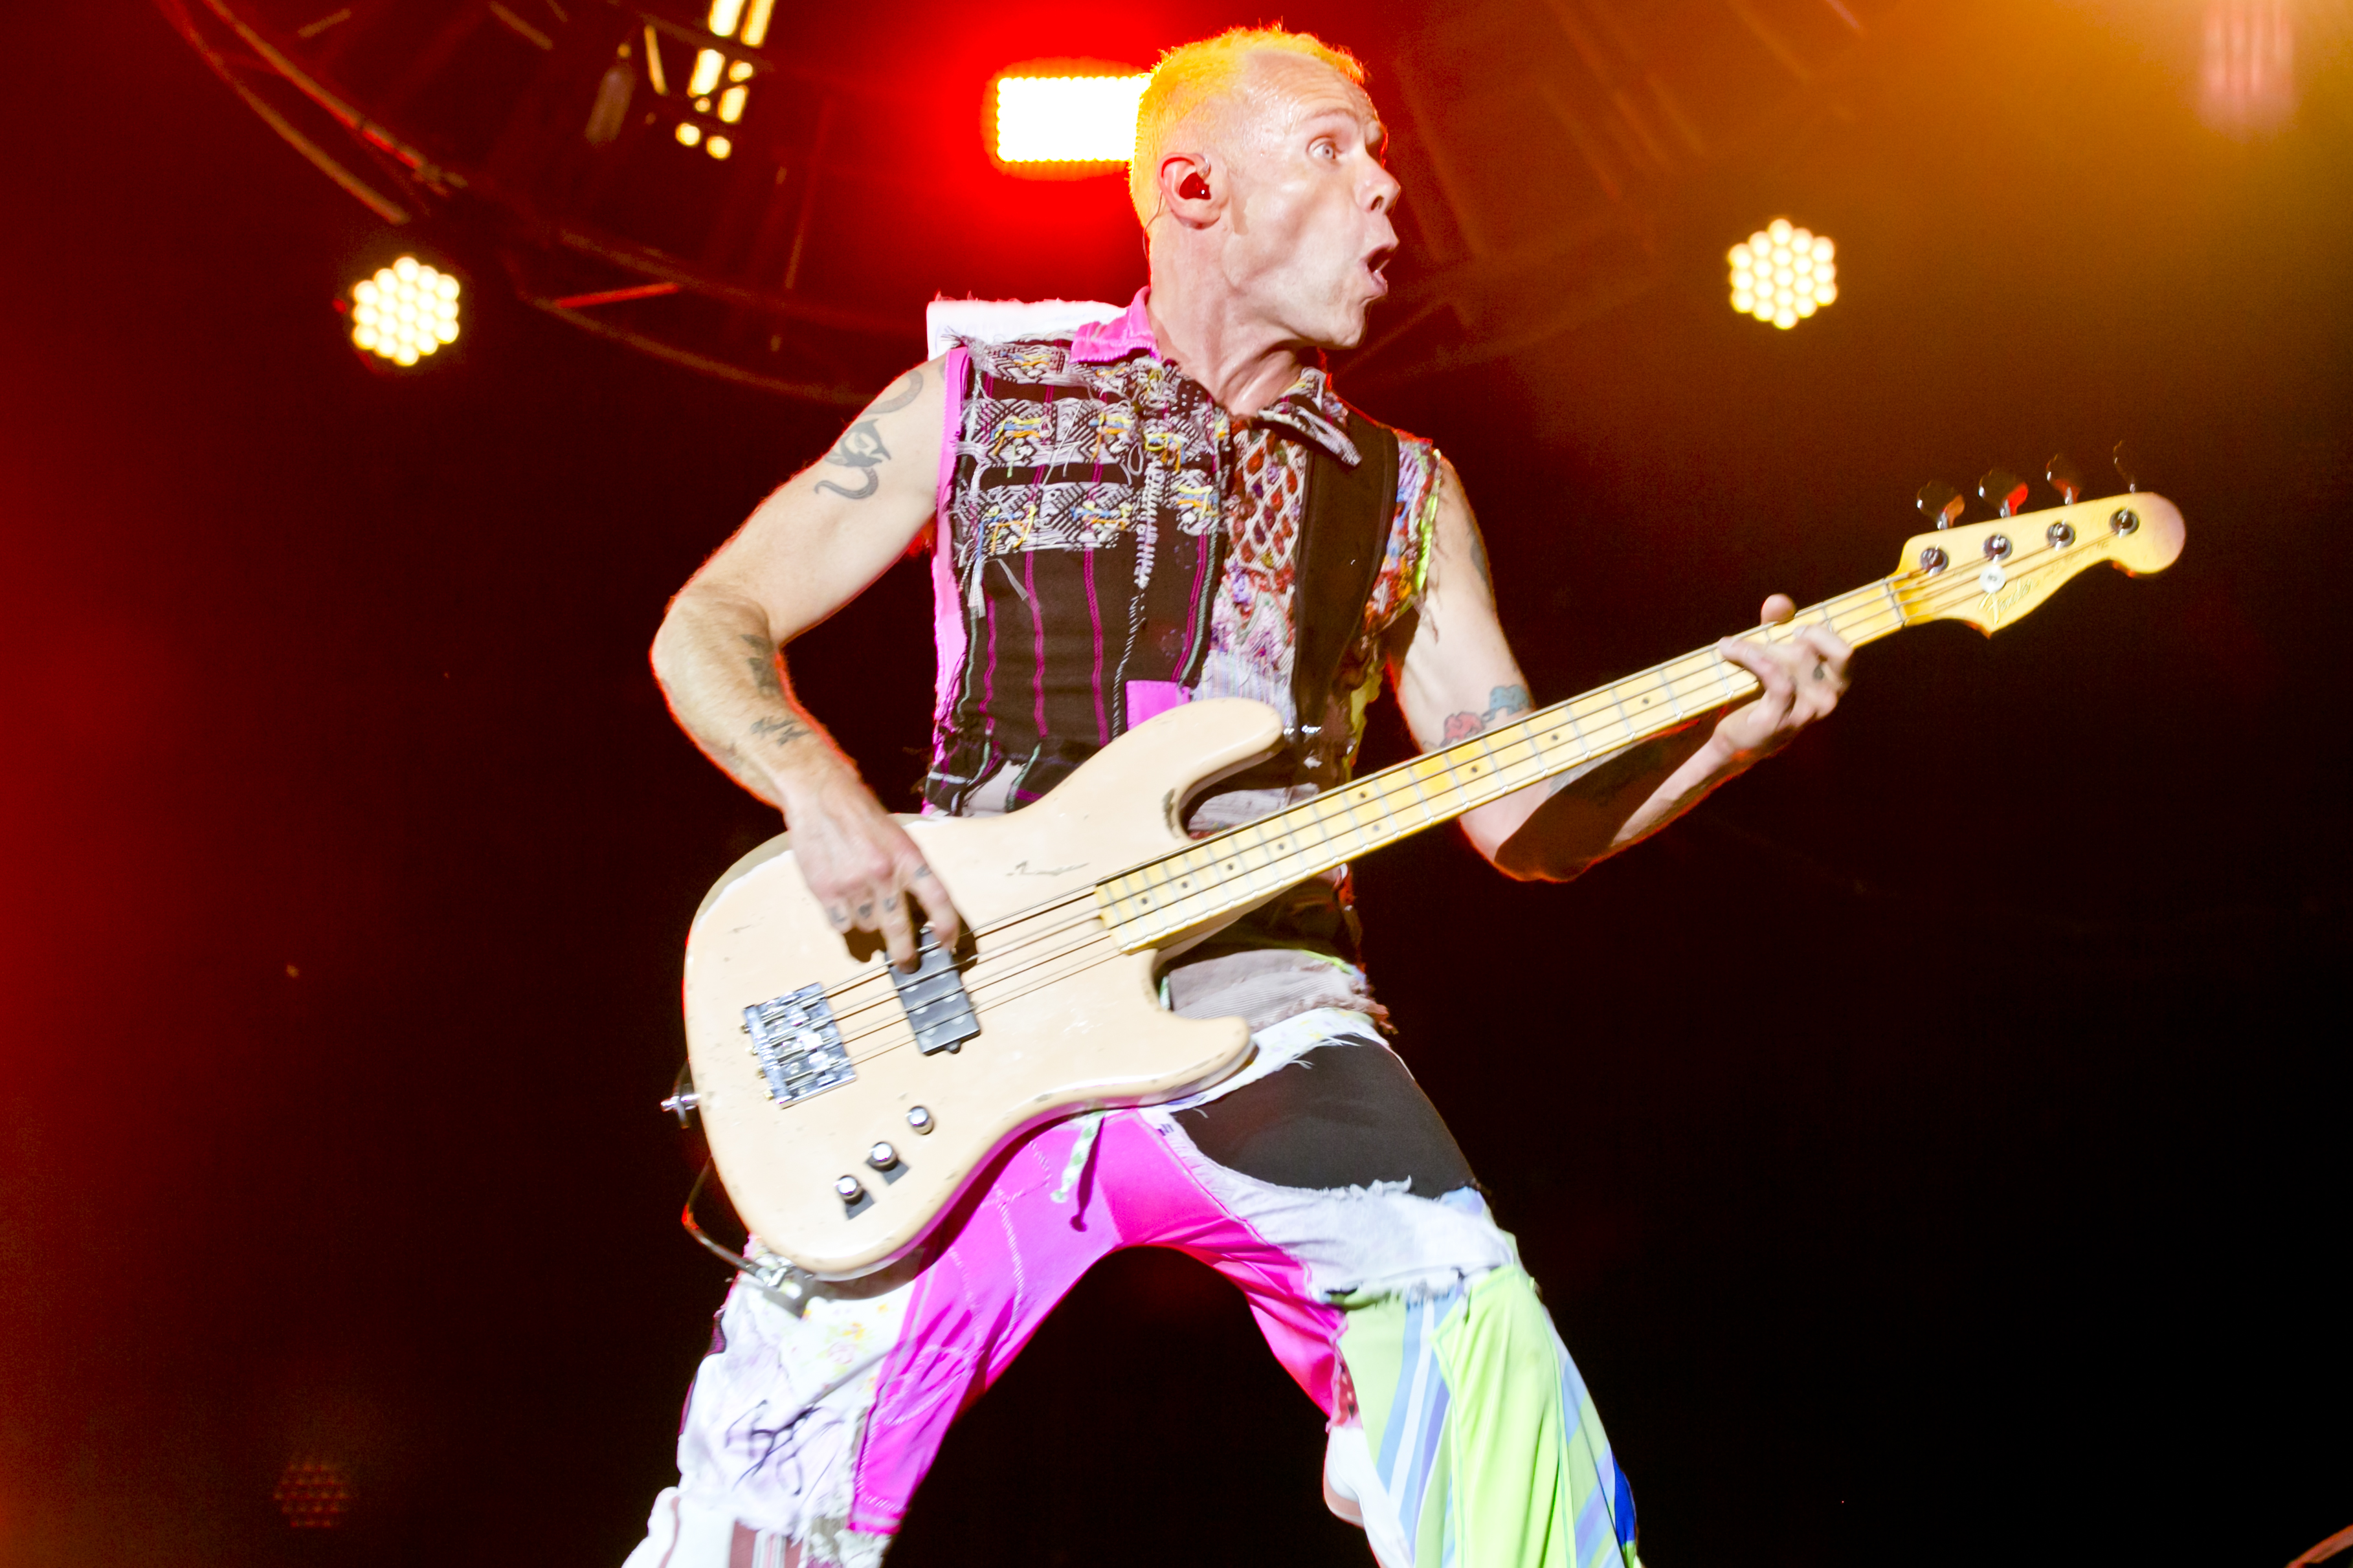 Red_Hot_Chilli_Peppers_Reading_Festival_UK_Matias_Altbach